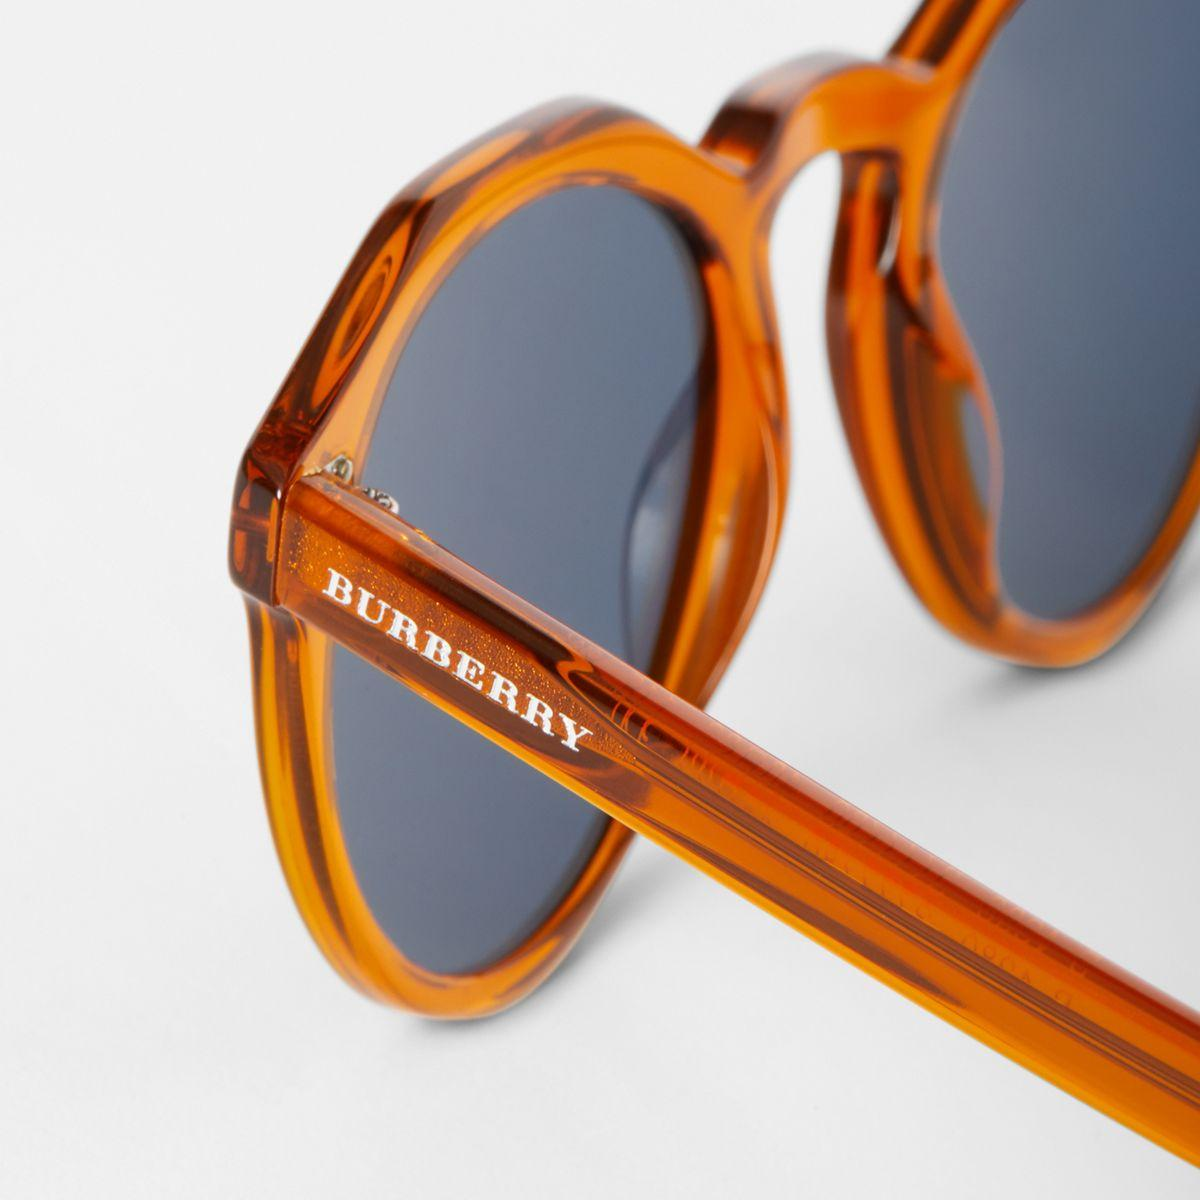 bd35b711a6a1 Burberry Keyhole Round Frame Sunglasses in Orange for Men - Lyst